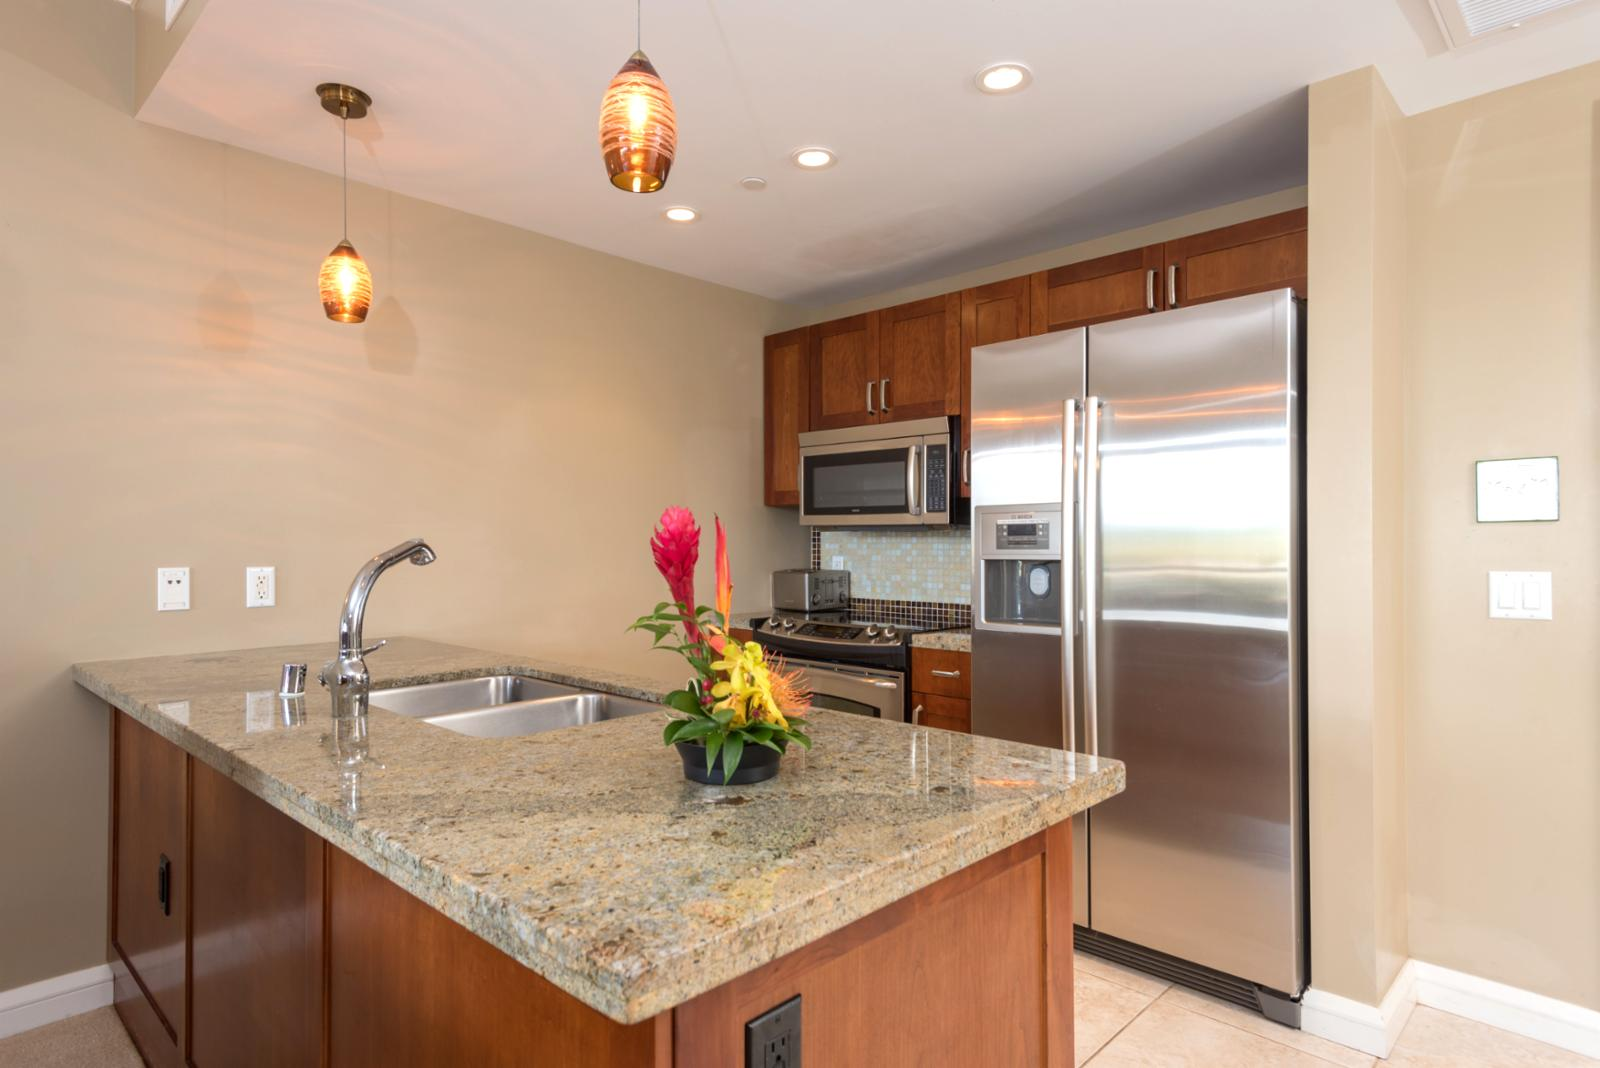 Stainless steel appliances - ready for meal preparation!